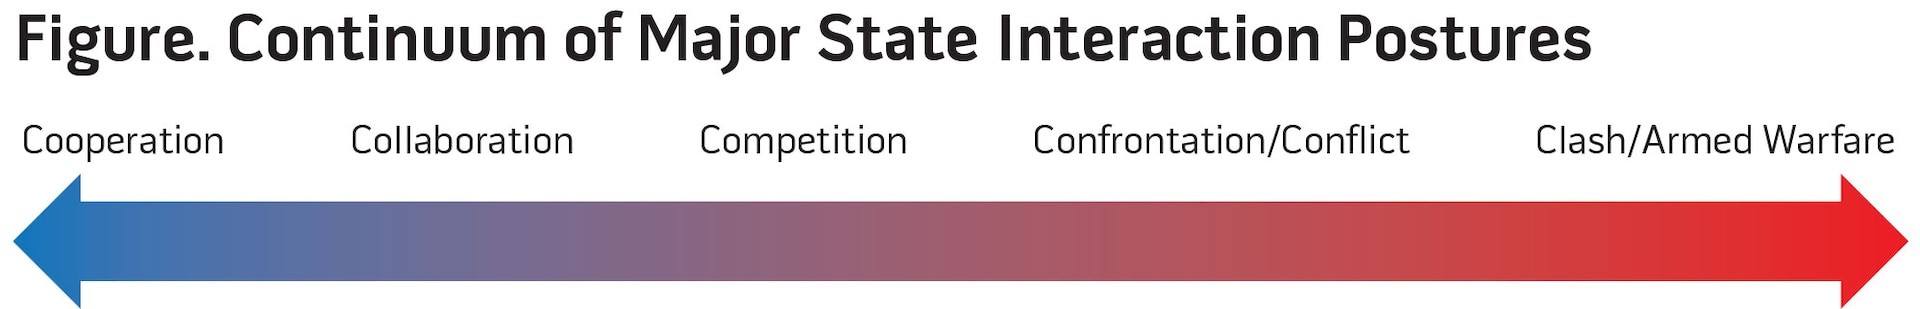 Figure. Continuum of Major State Interaction Postures